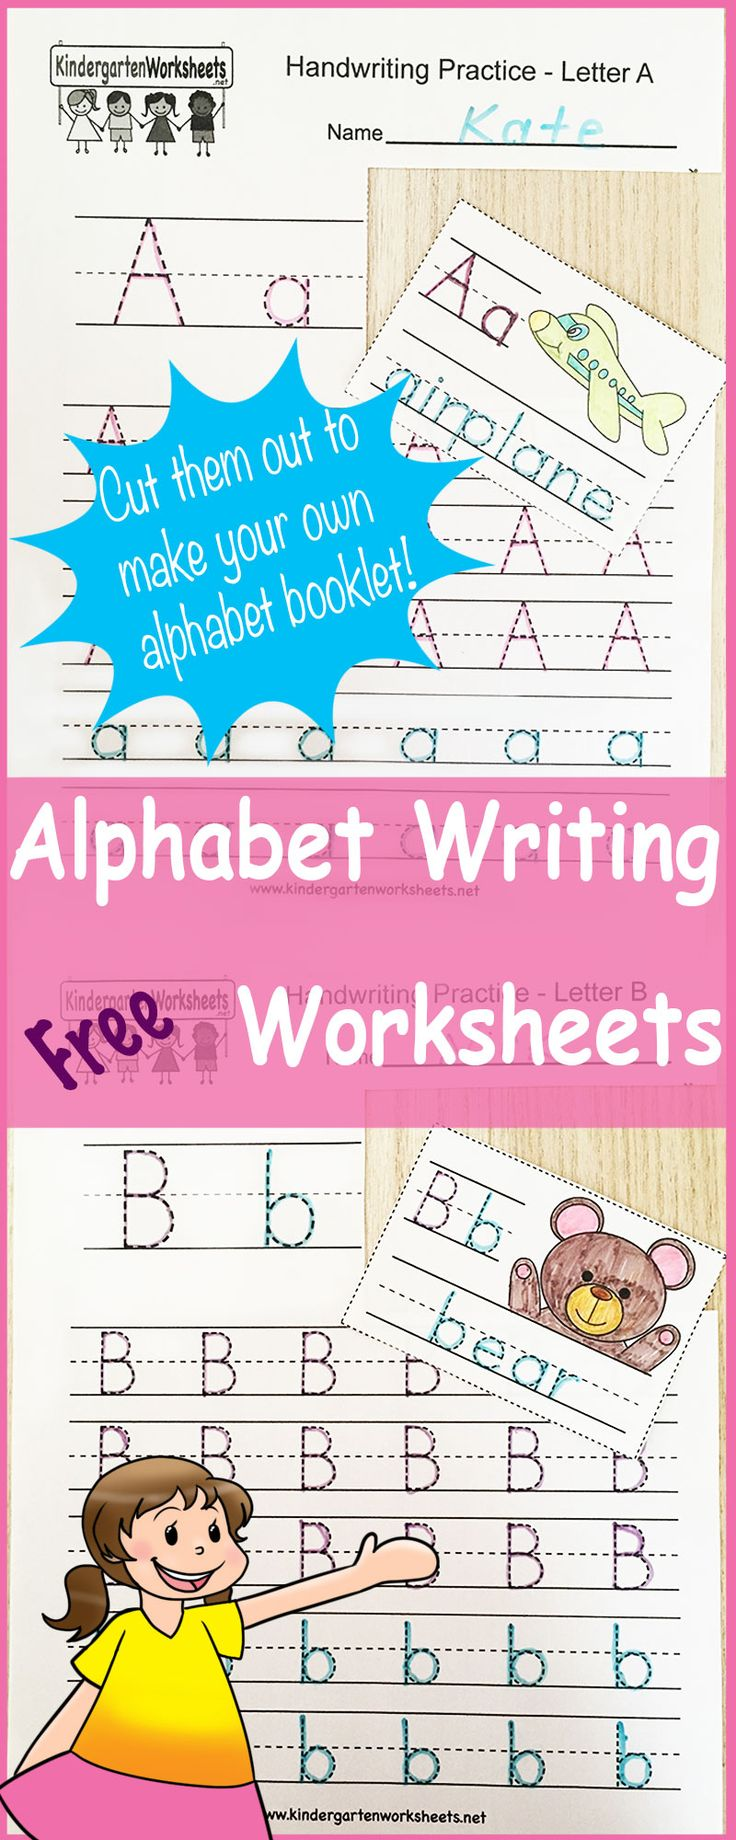 30 best Writing Worksheets images on Pinterest | Daycare ideas ...